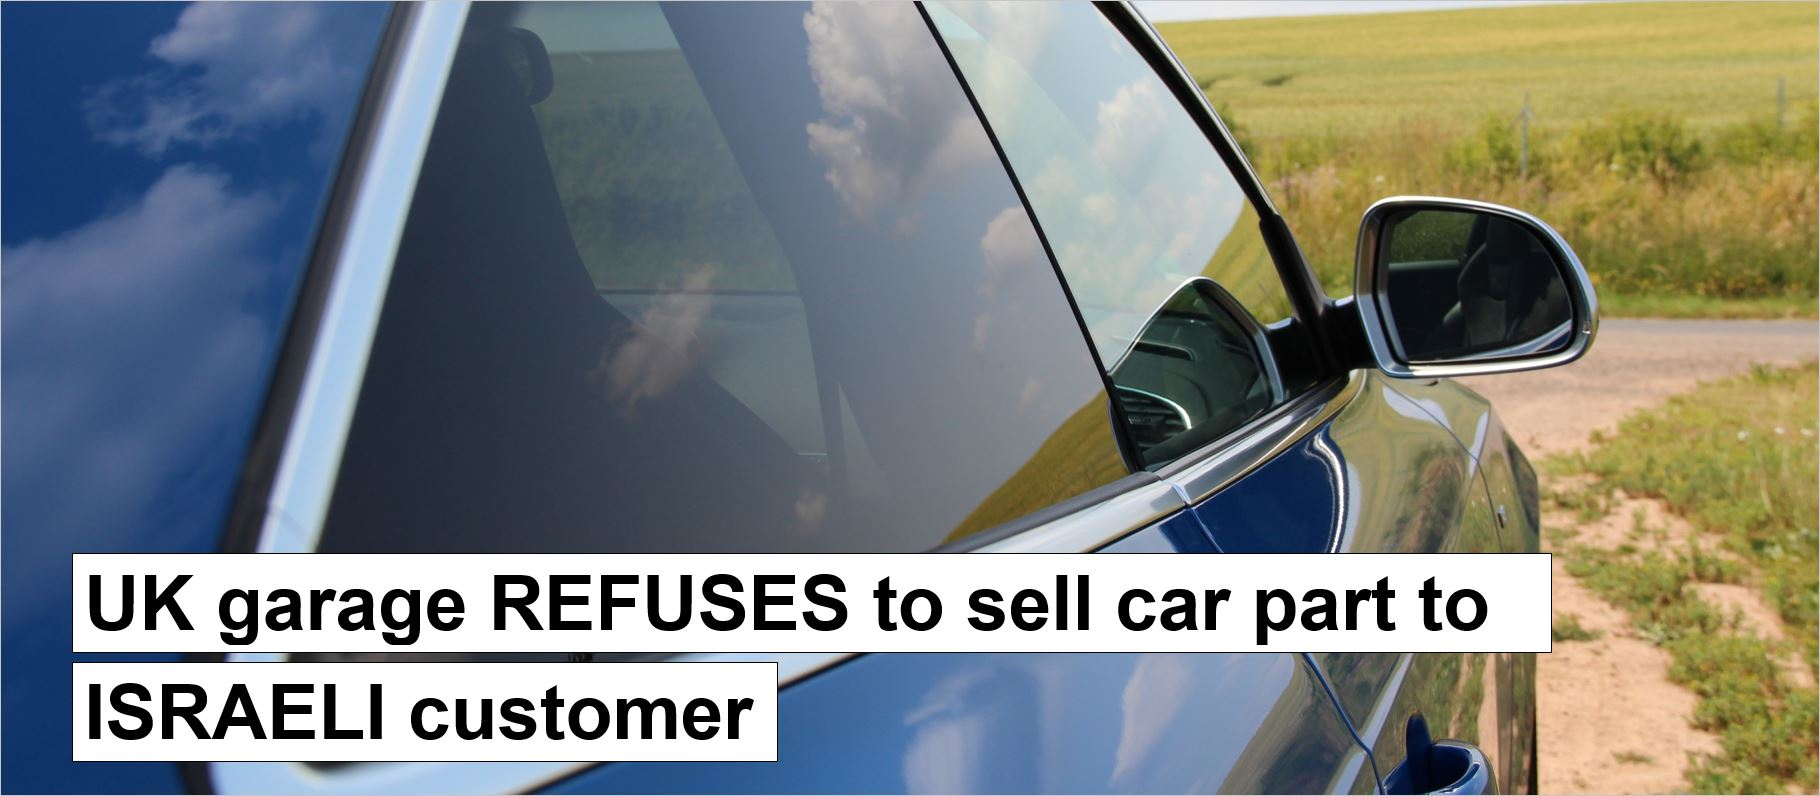 UK garage REFUSES to sell car part to Israeli customer